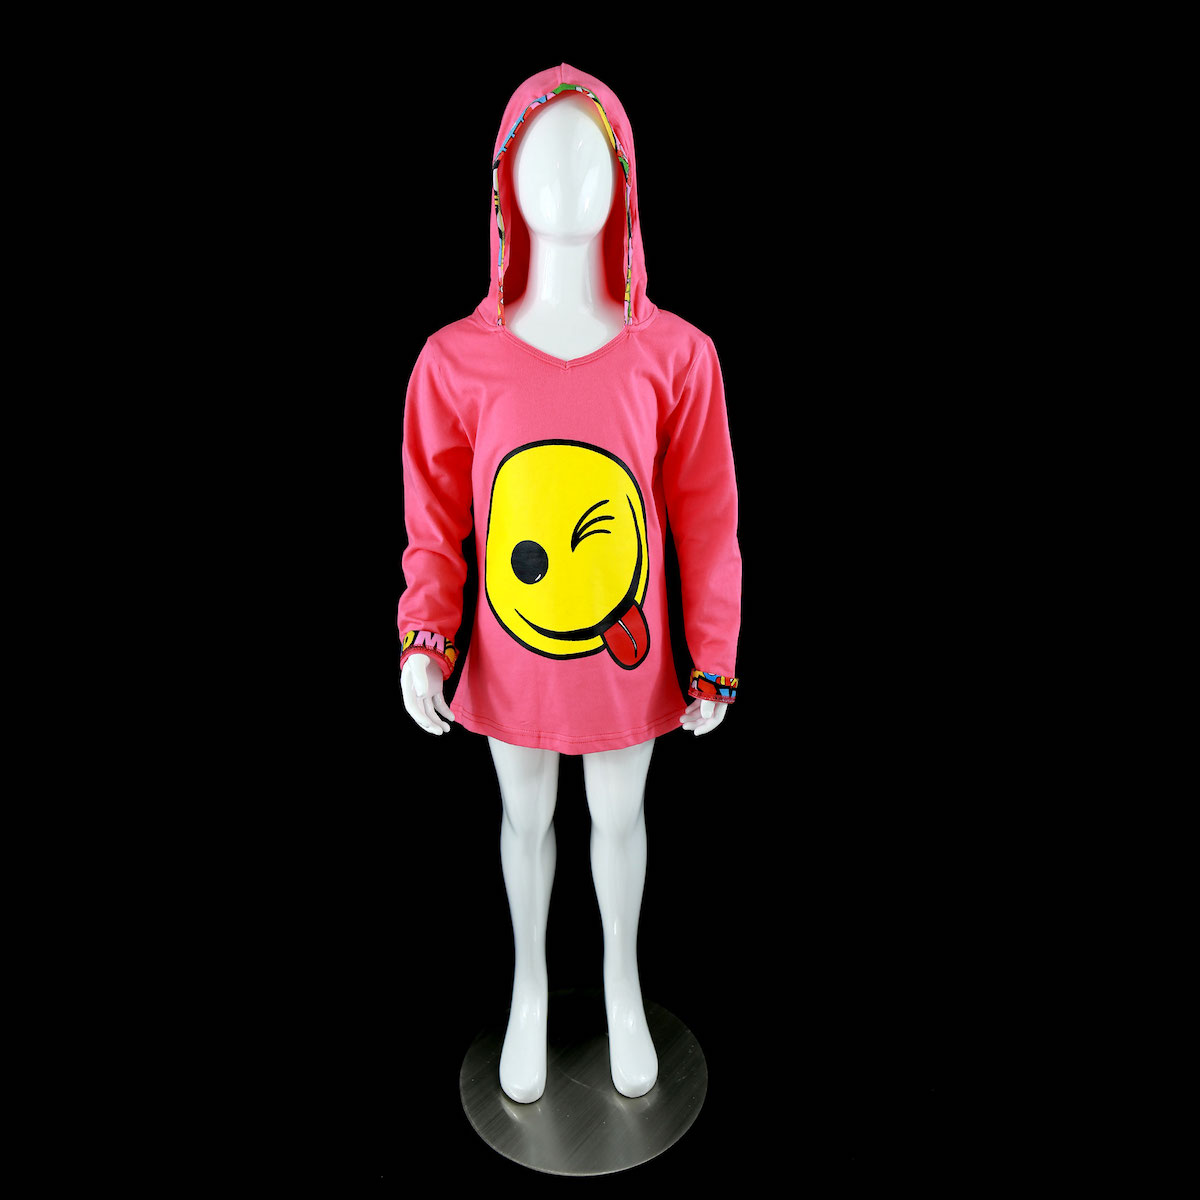 Cool clothes online